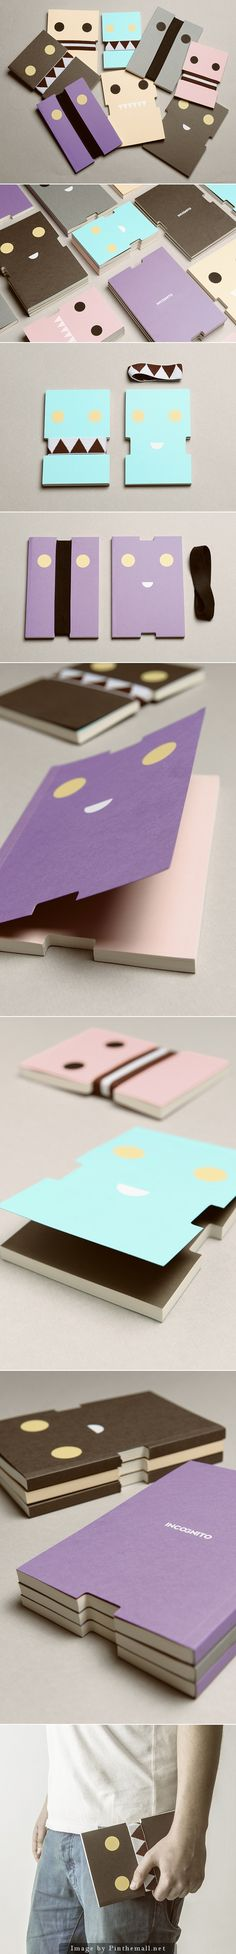 Incognito is a clever way to hide & show the gestures of notebooks. The notebooks are the outcome of an interesting die cut, combined with textile bands. Just take off the band and see what your notebook looks like. happilyeverpaper.com